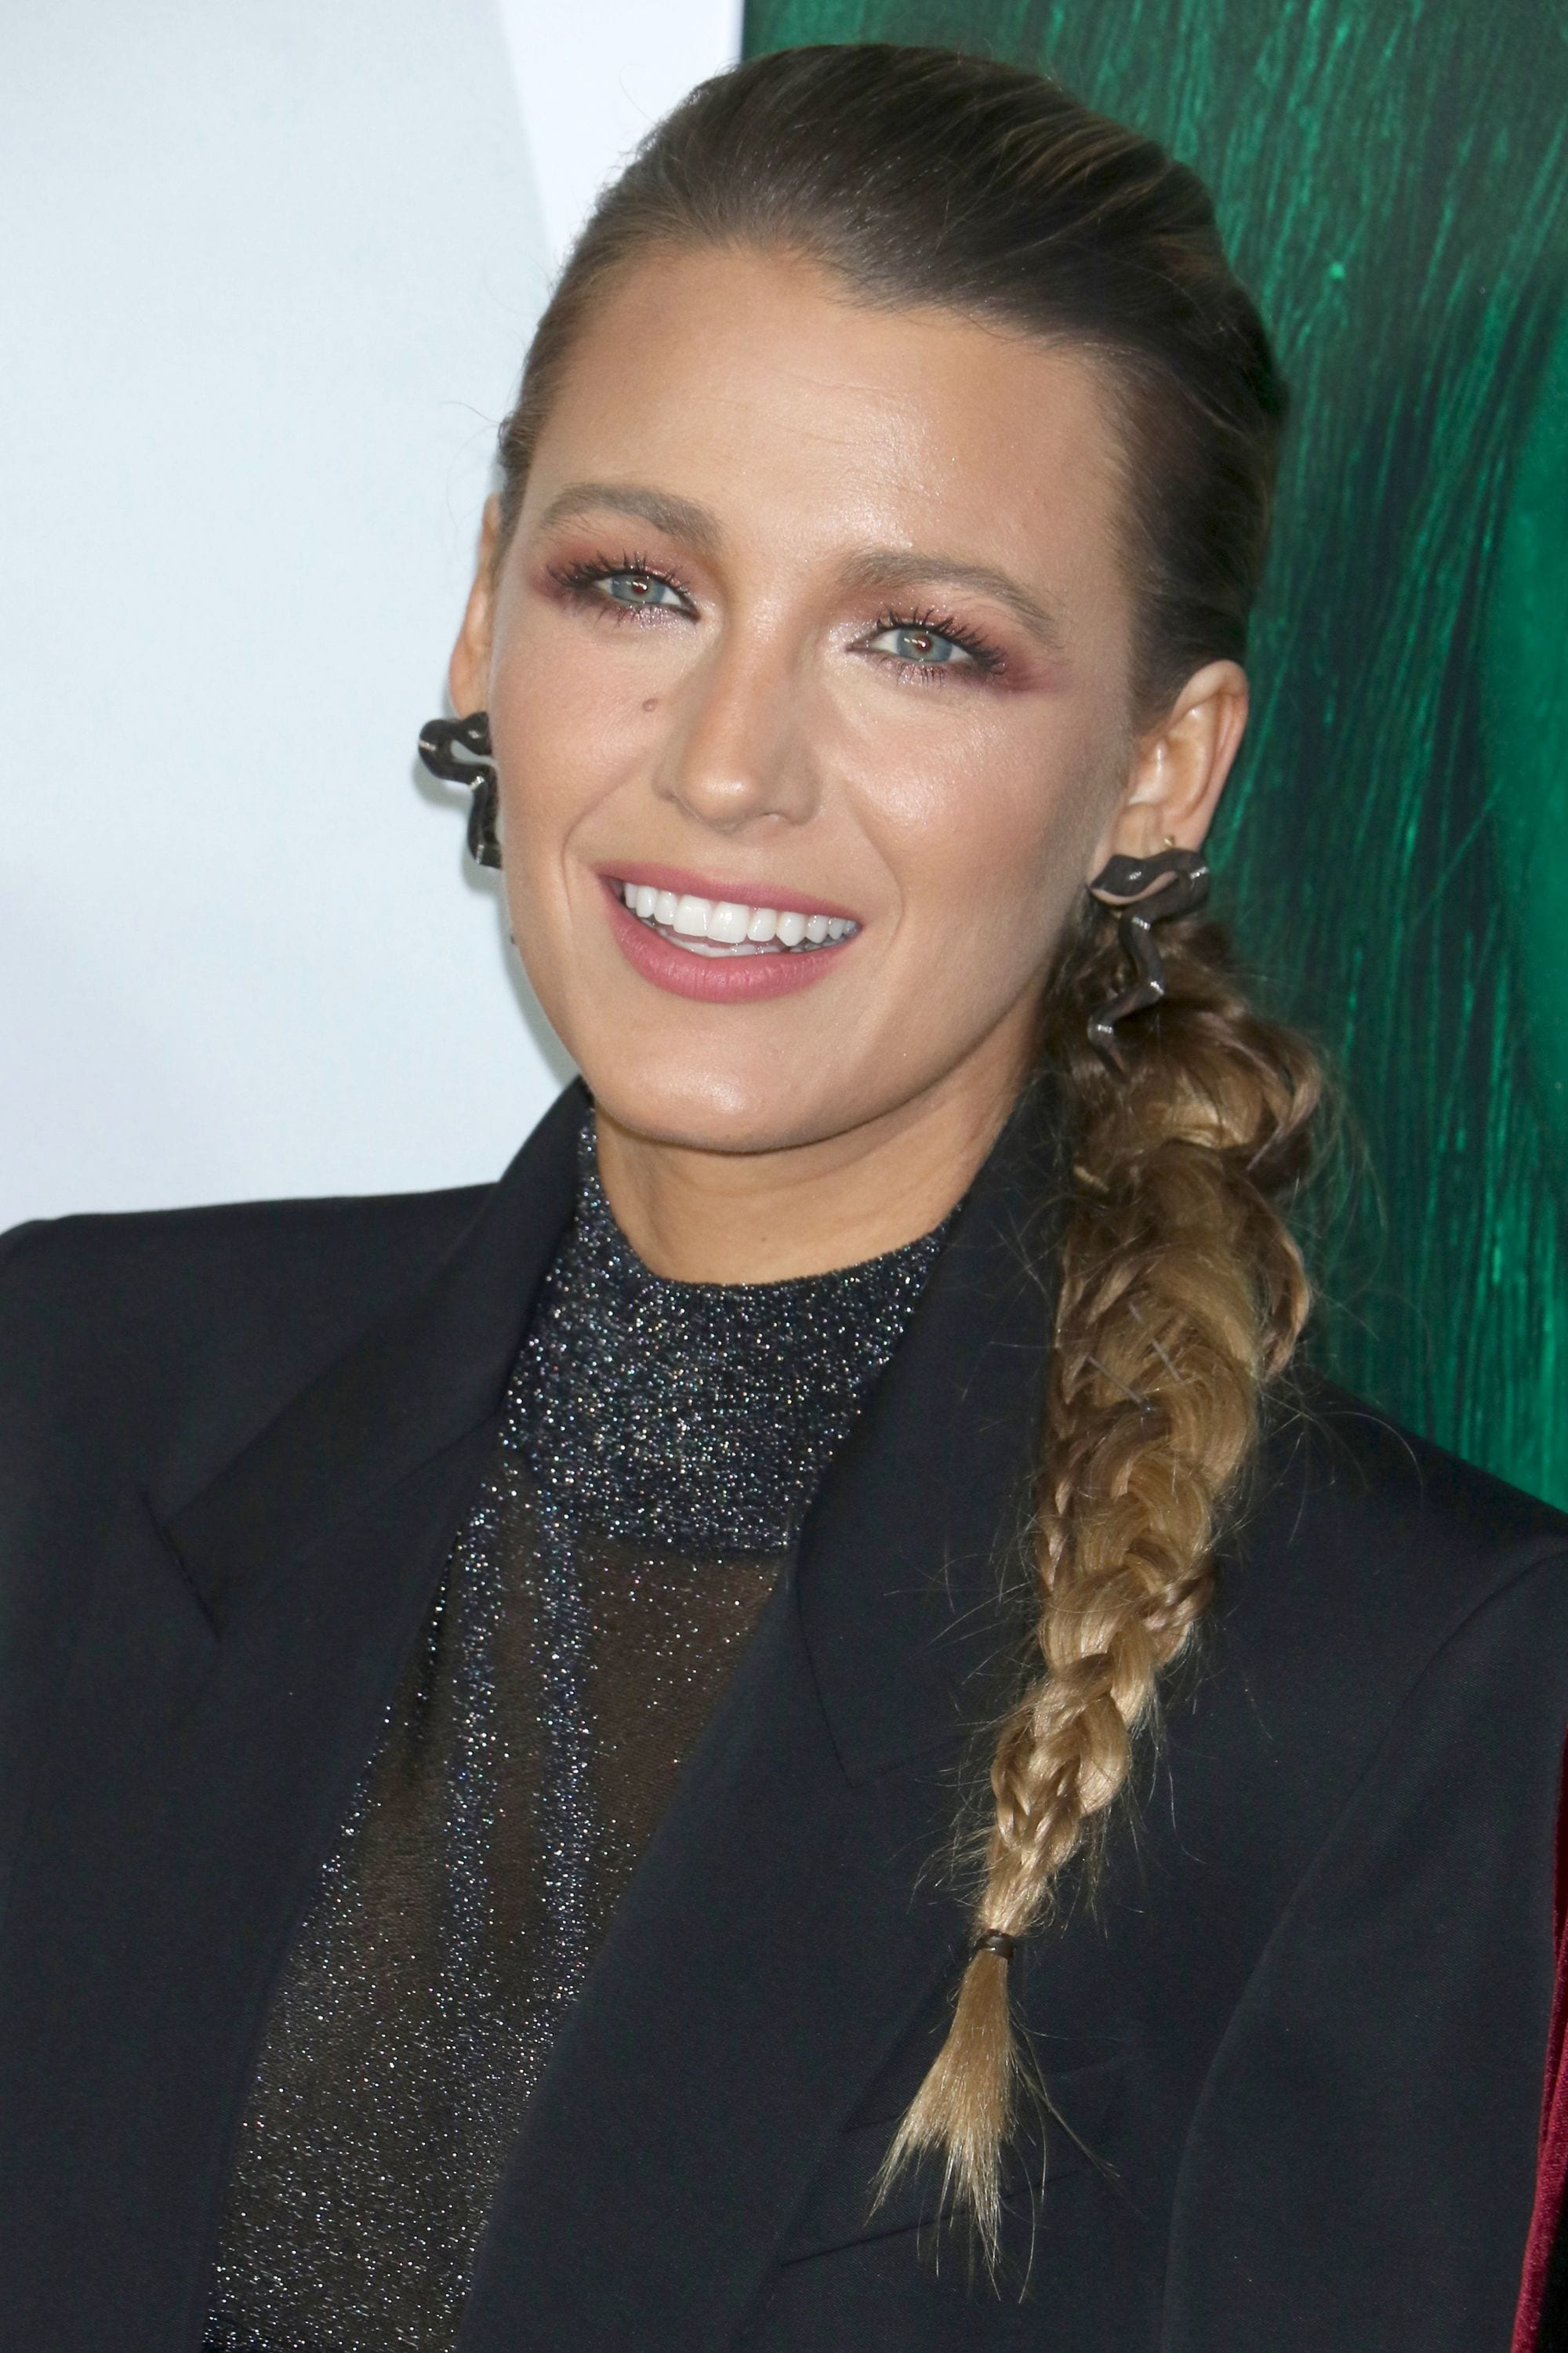 Side braid hairstyles: Blake Lively with long blonde side ponytail braid wearing a black outfit.